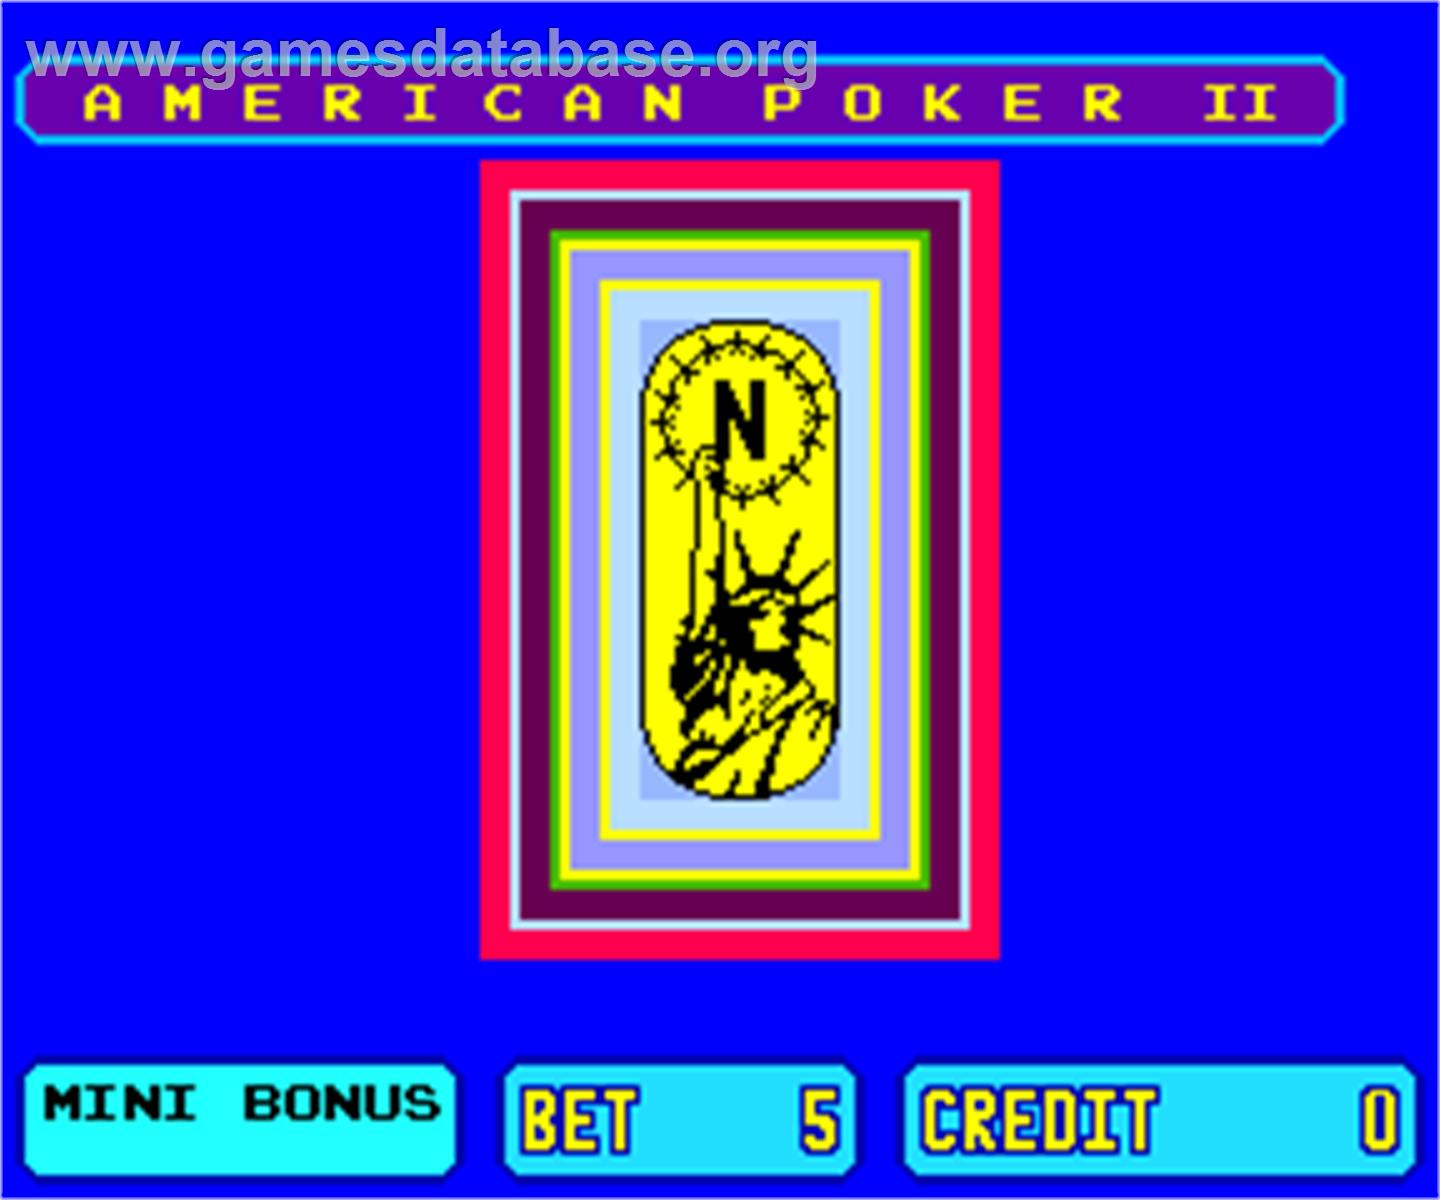 slots online for free american poker 2